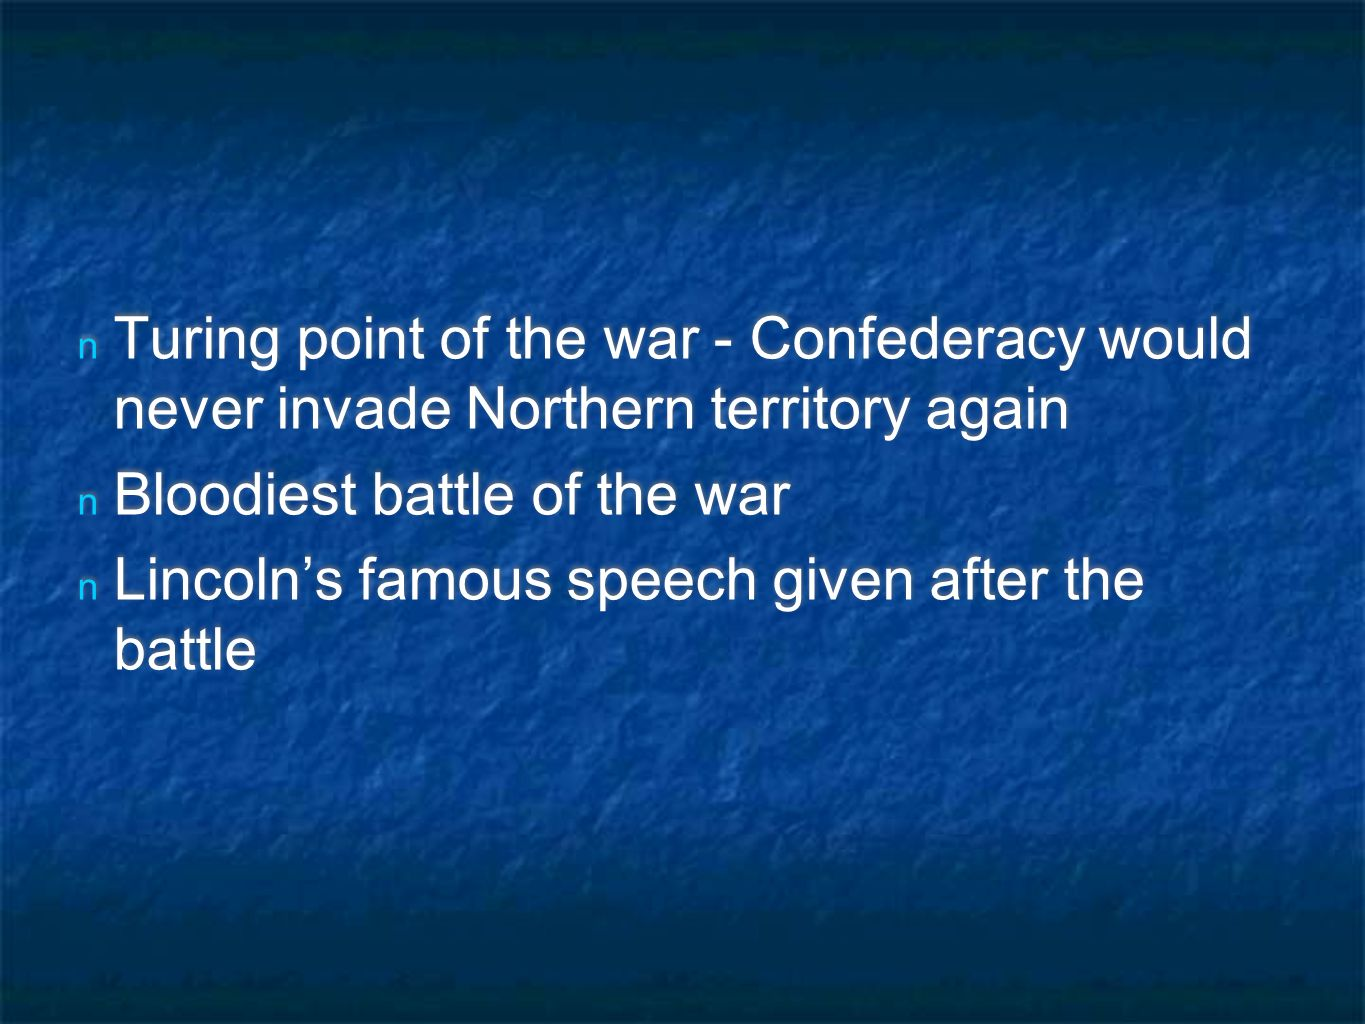 n Turing point of the war - Confederacy would never invade Northern territory again n Bloodiest battle of the war n Lincoln's famous speech given after the battle n Turing point of the war - Confederacy would never invade Northern territory again n Bloodiest battle of the war n Lincoln's famous speech given after the battle